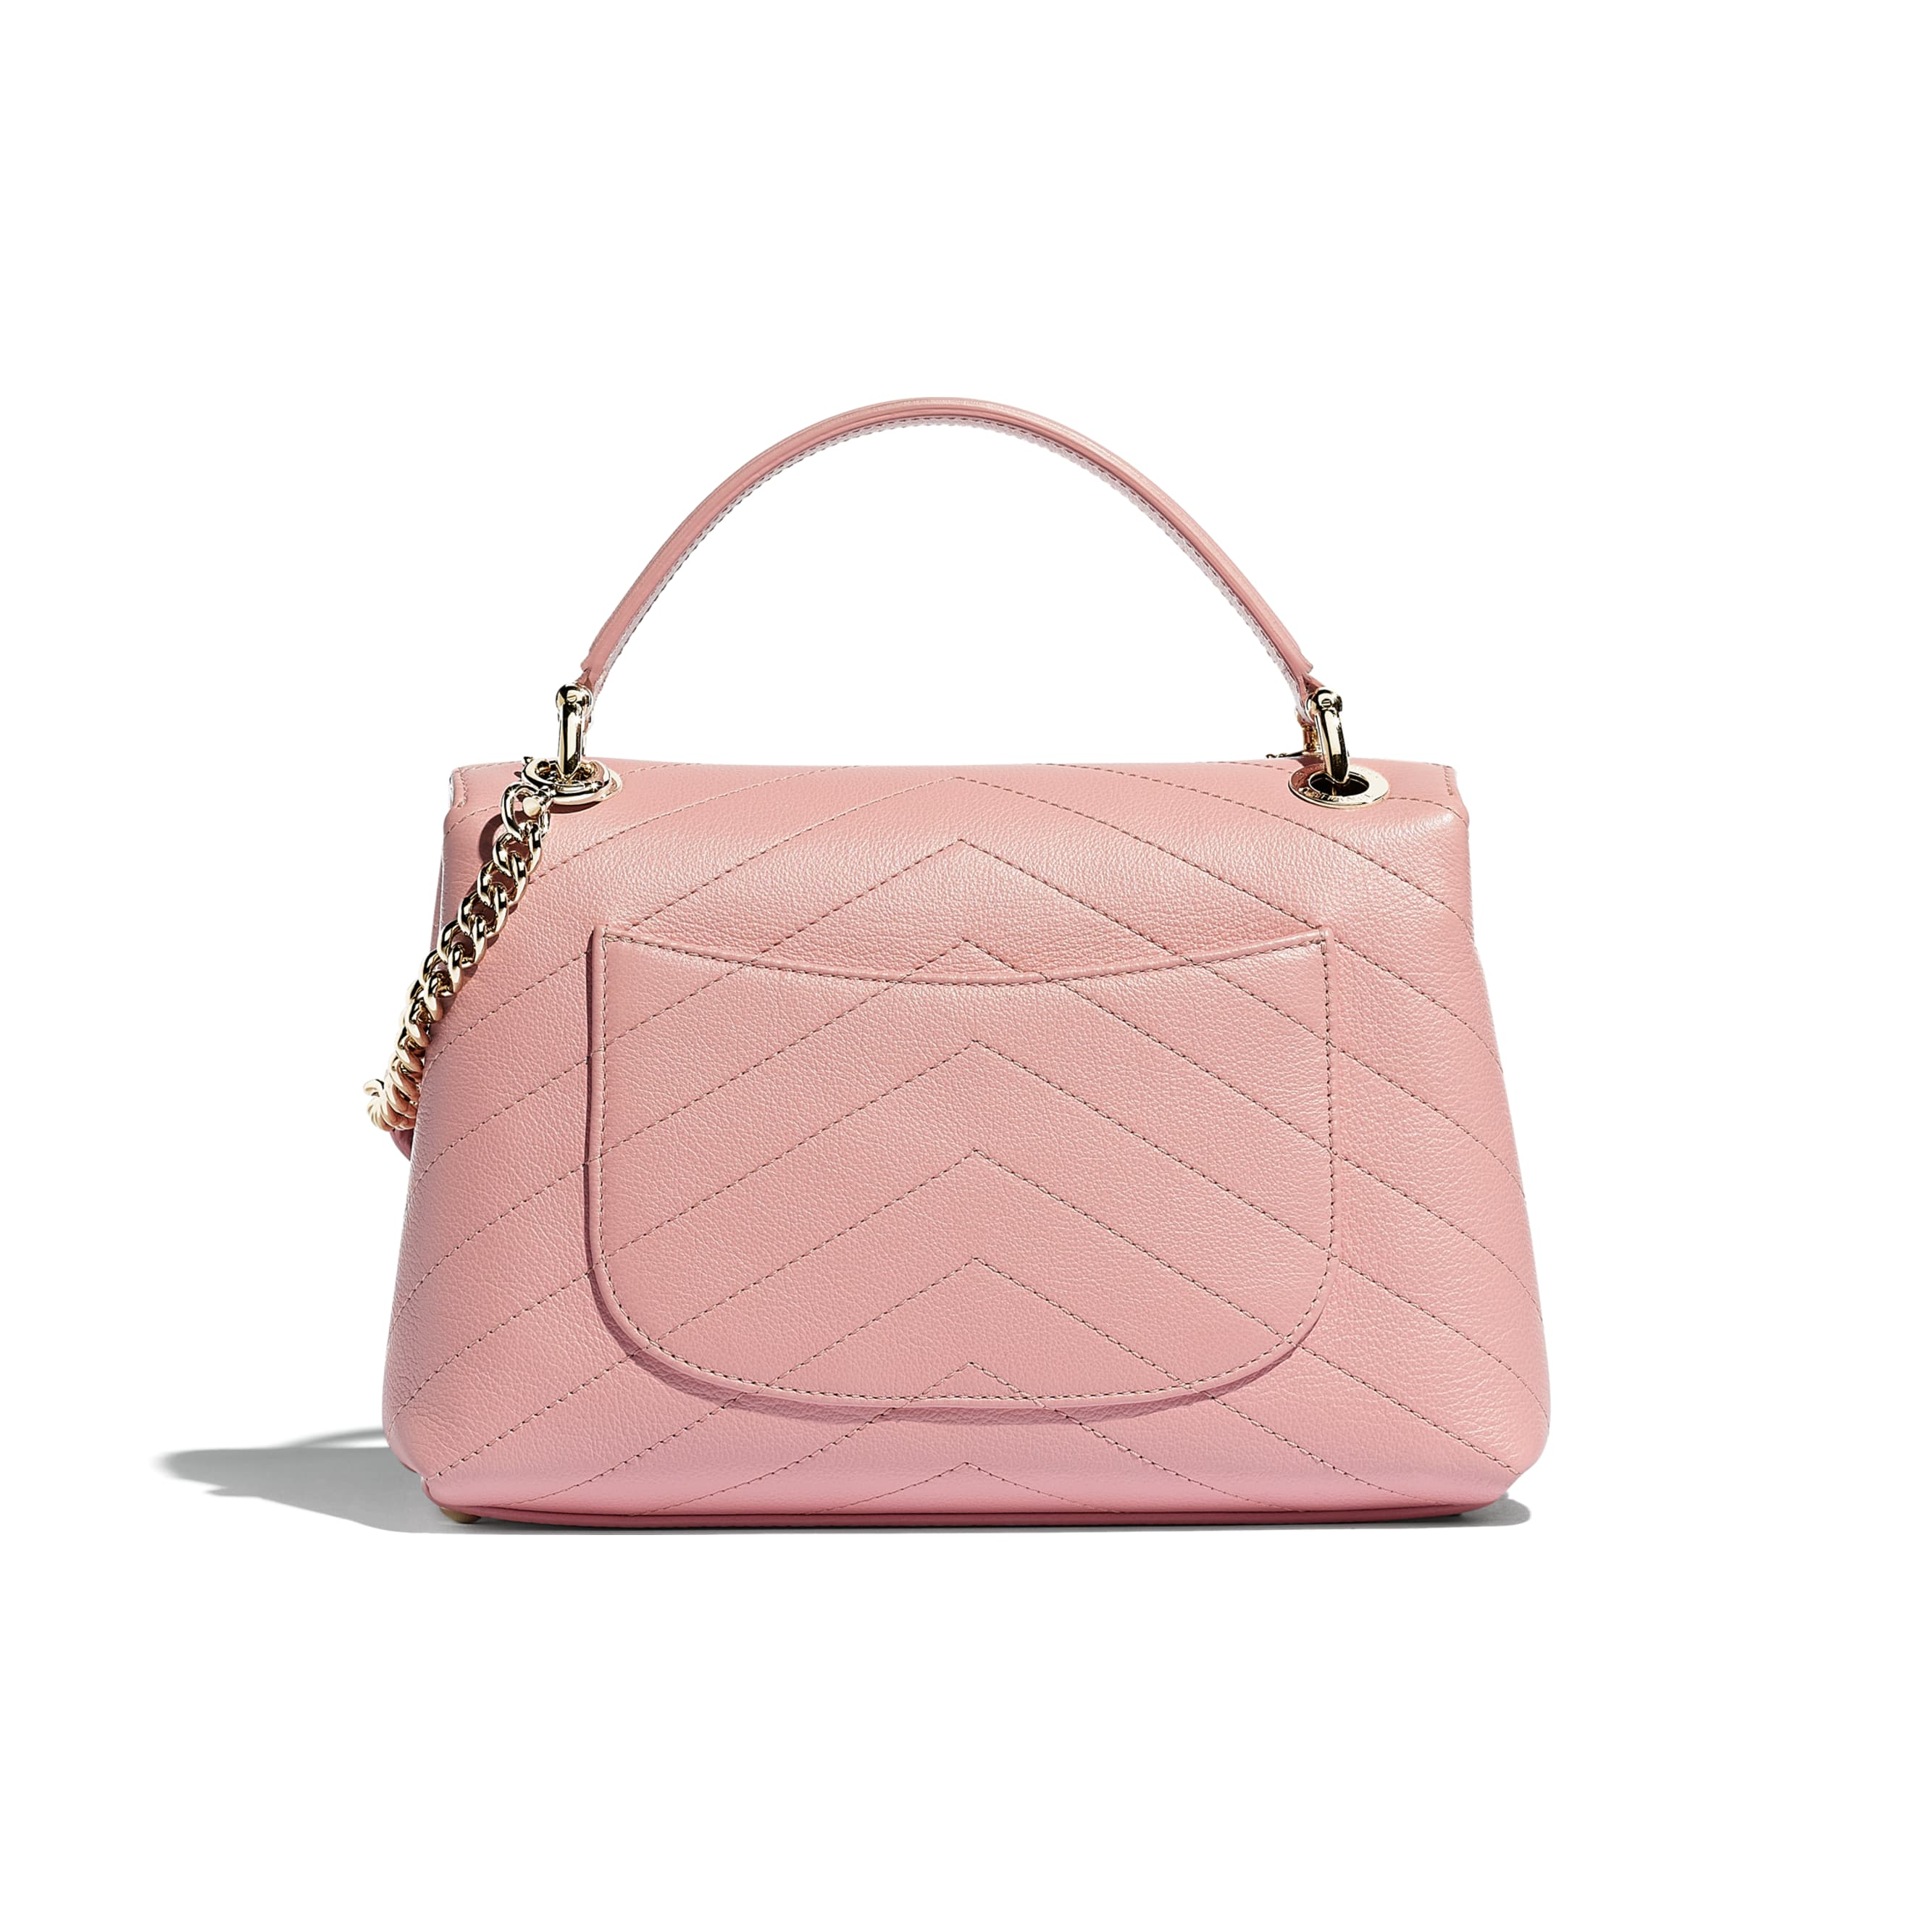 Small Flap Bag with Top Handle - Pink - Grained Calfskin & Gold-Tone Metal - Alternative view - see standard sized version